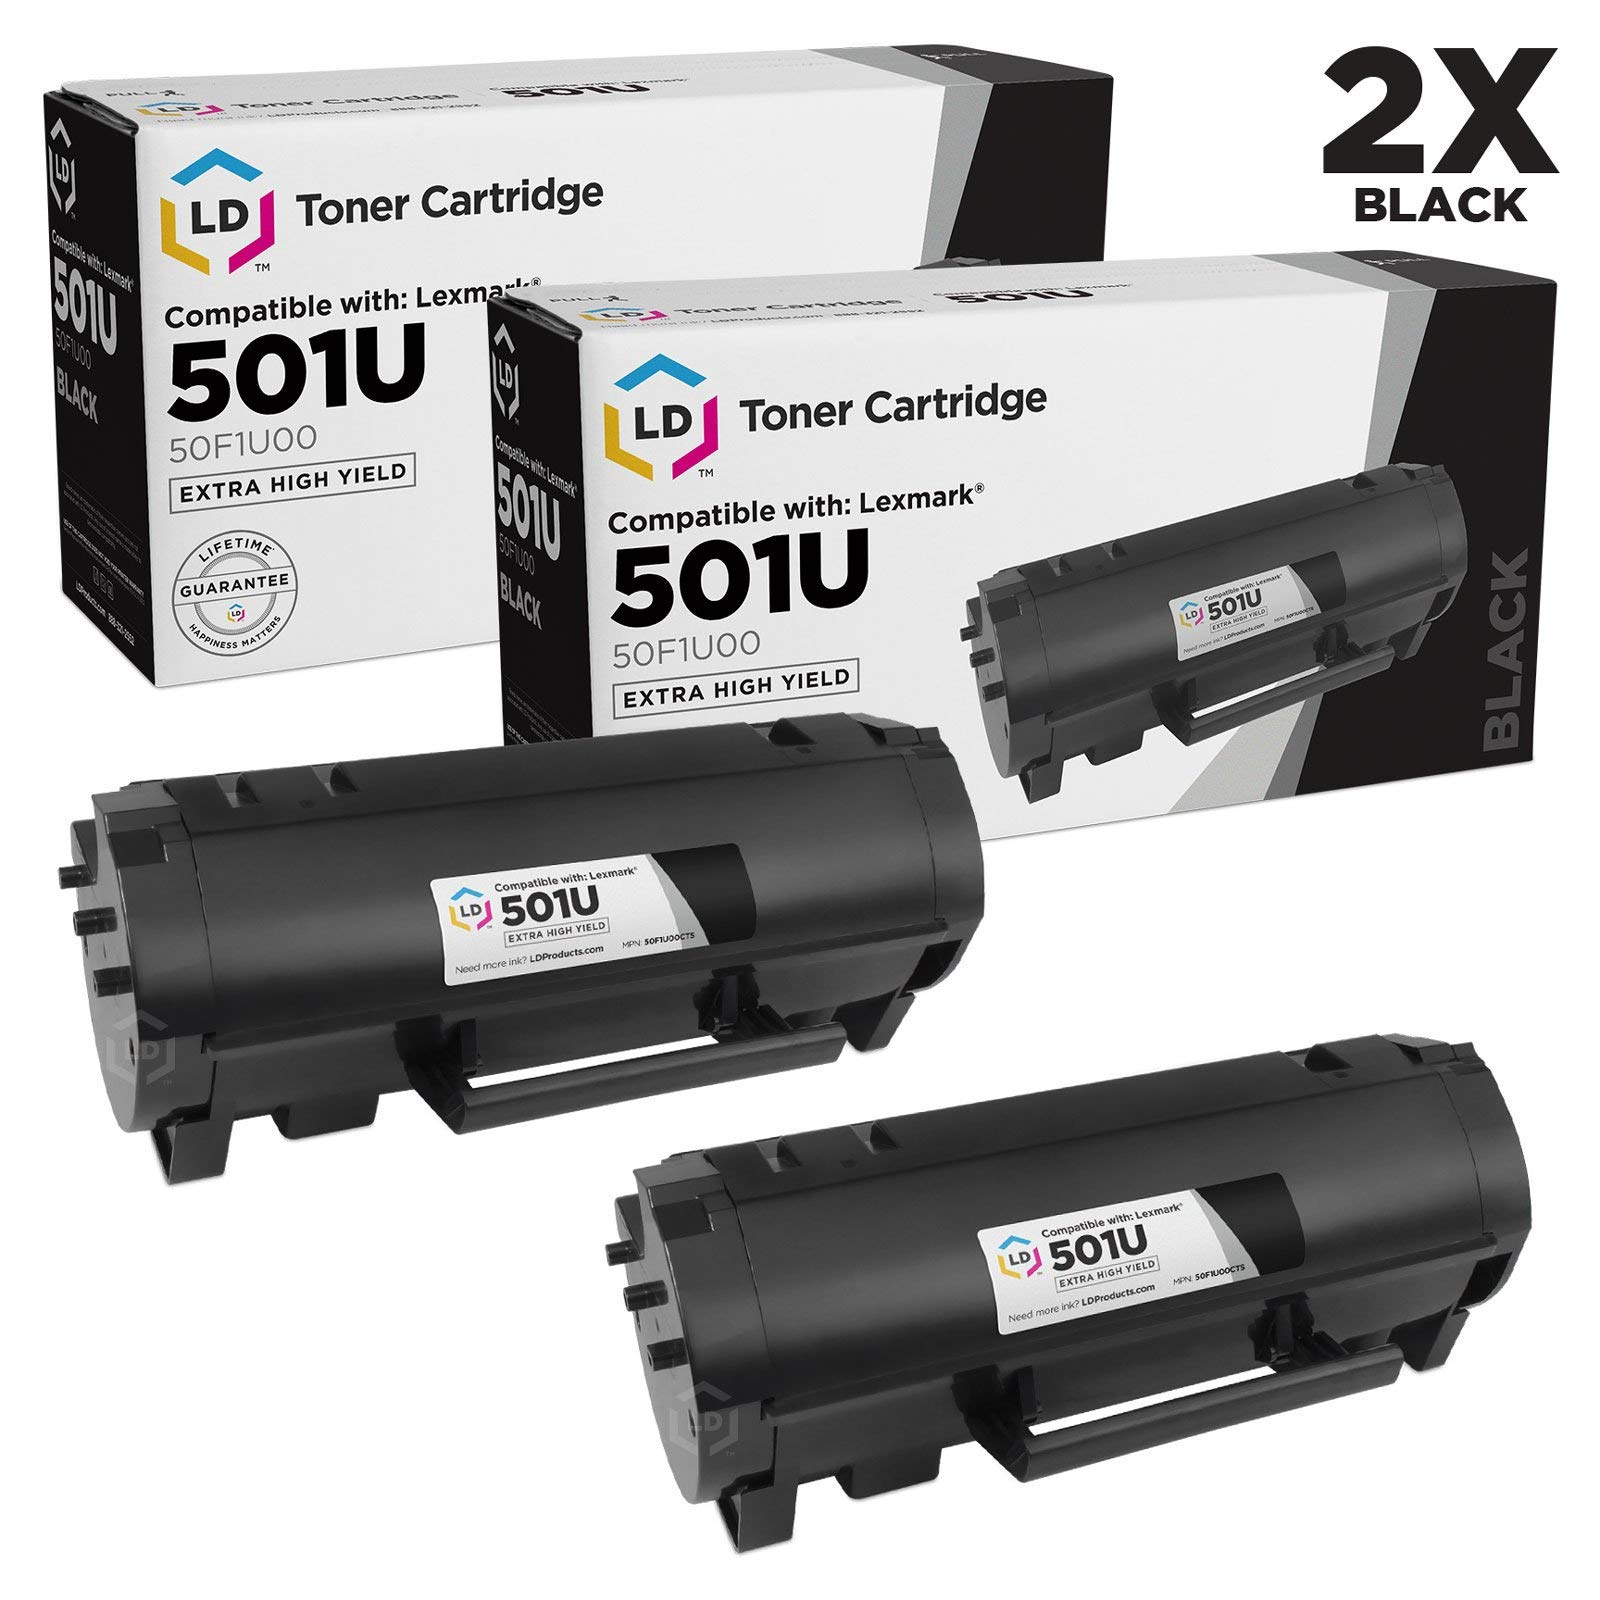 LD Compatible Toner Cartridge Replacement for Lexmark 501U 50F1U00 Ultra High Yield (Black, 2-Pack)